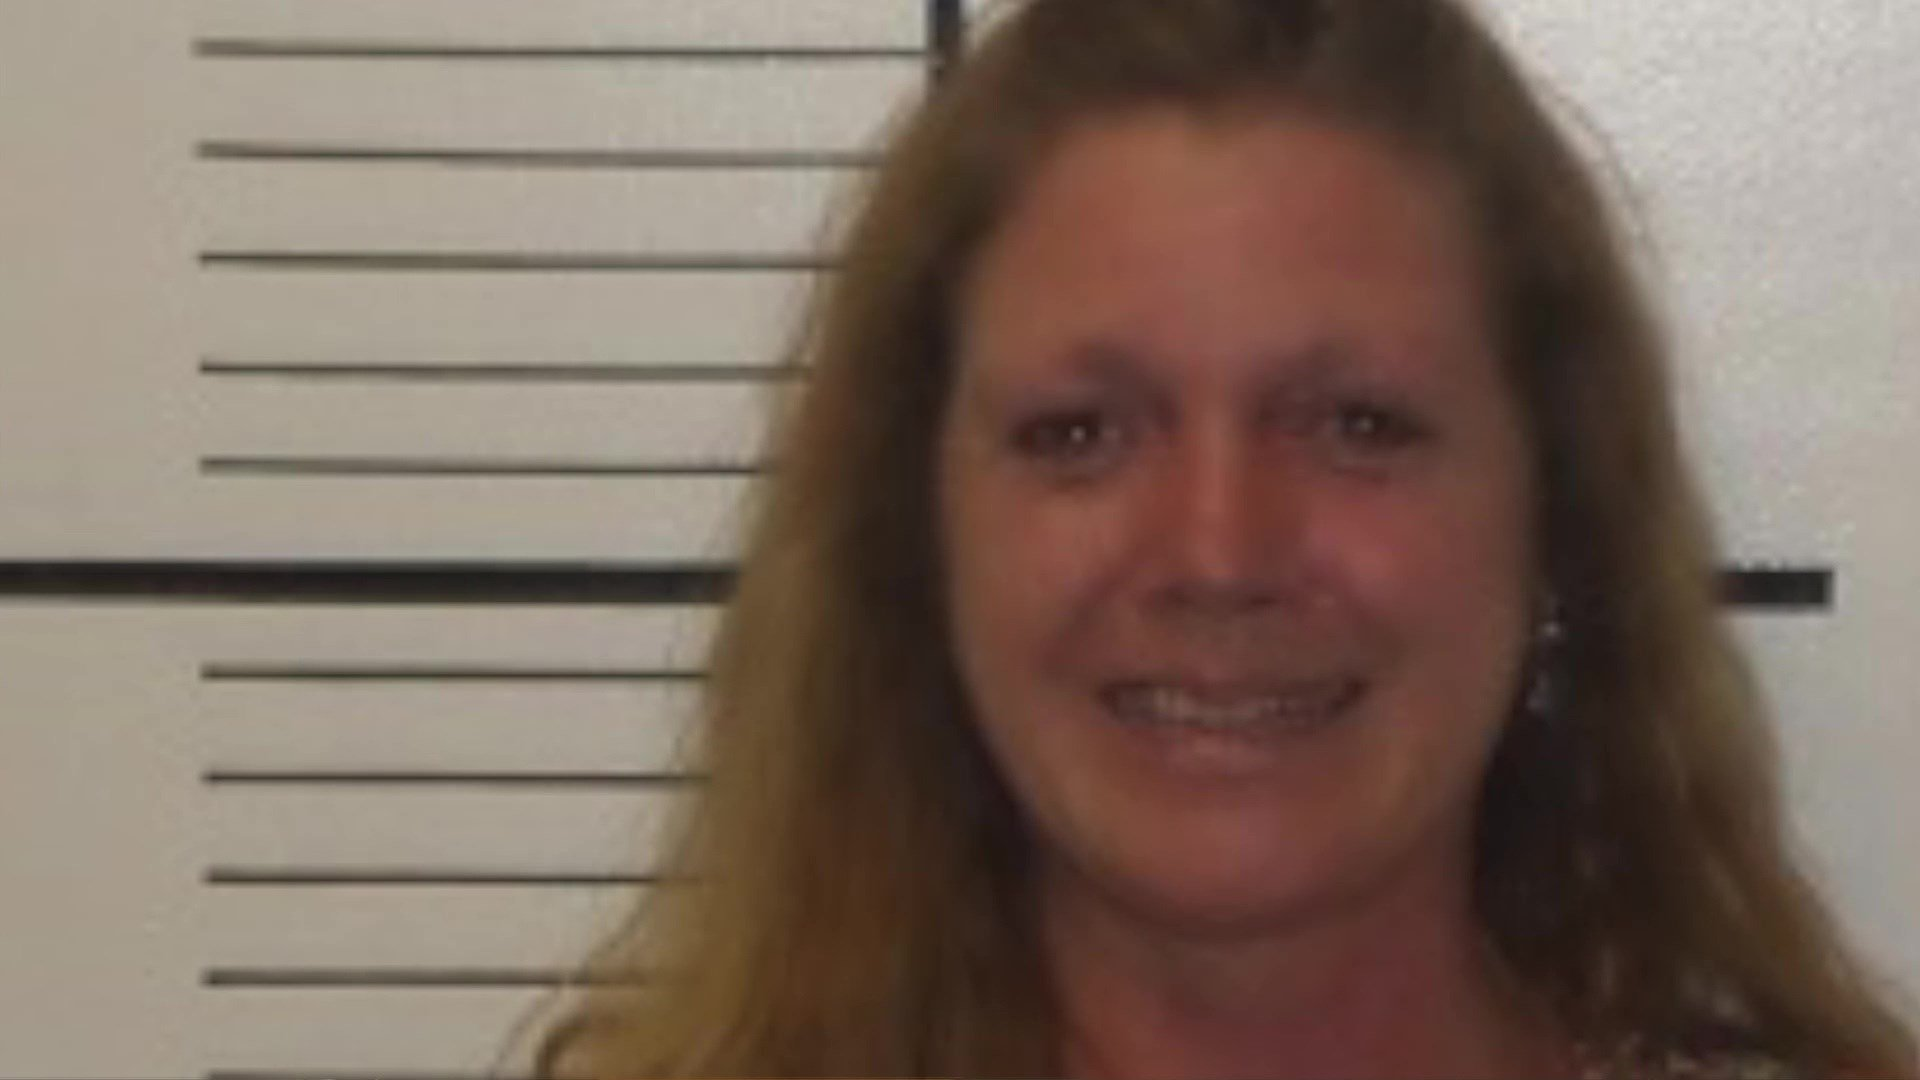 Kellie Olson is in custody in connection with a Saturday arson fire to a residence on East Front Street in Anaconda.